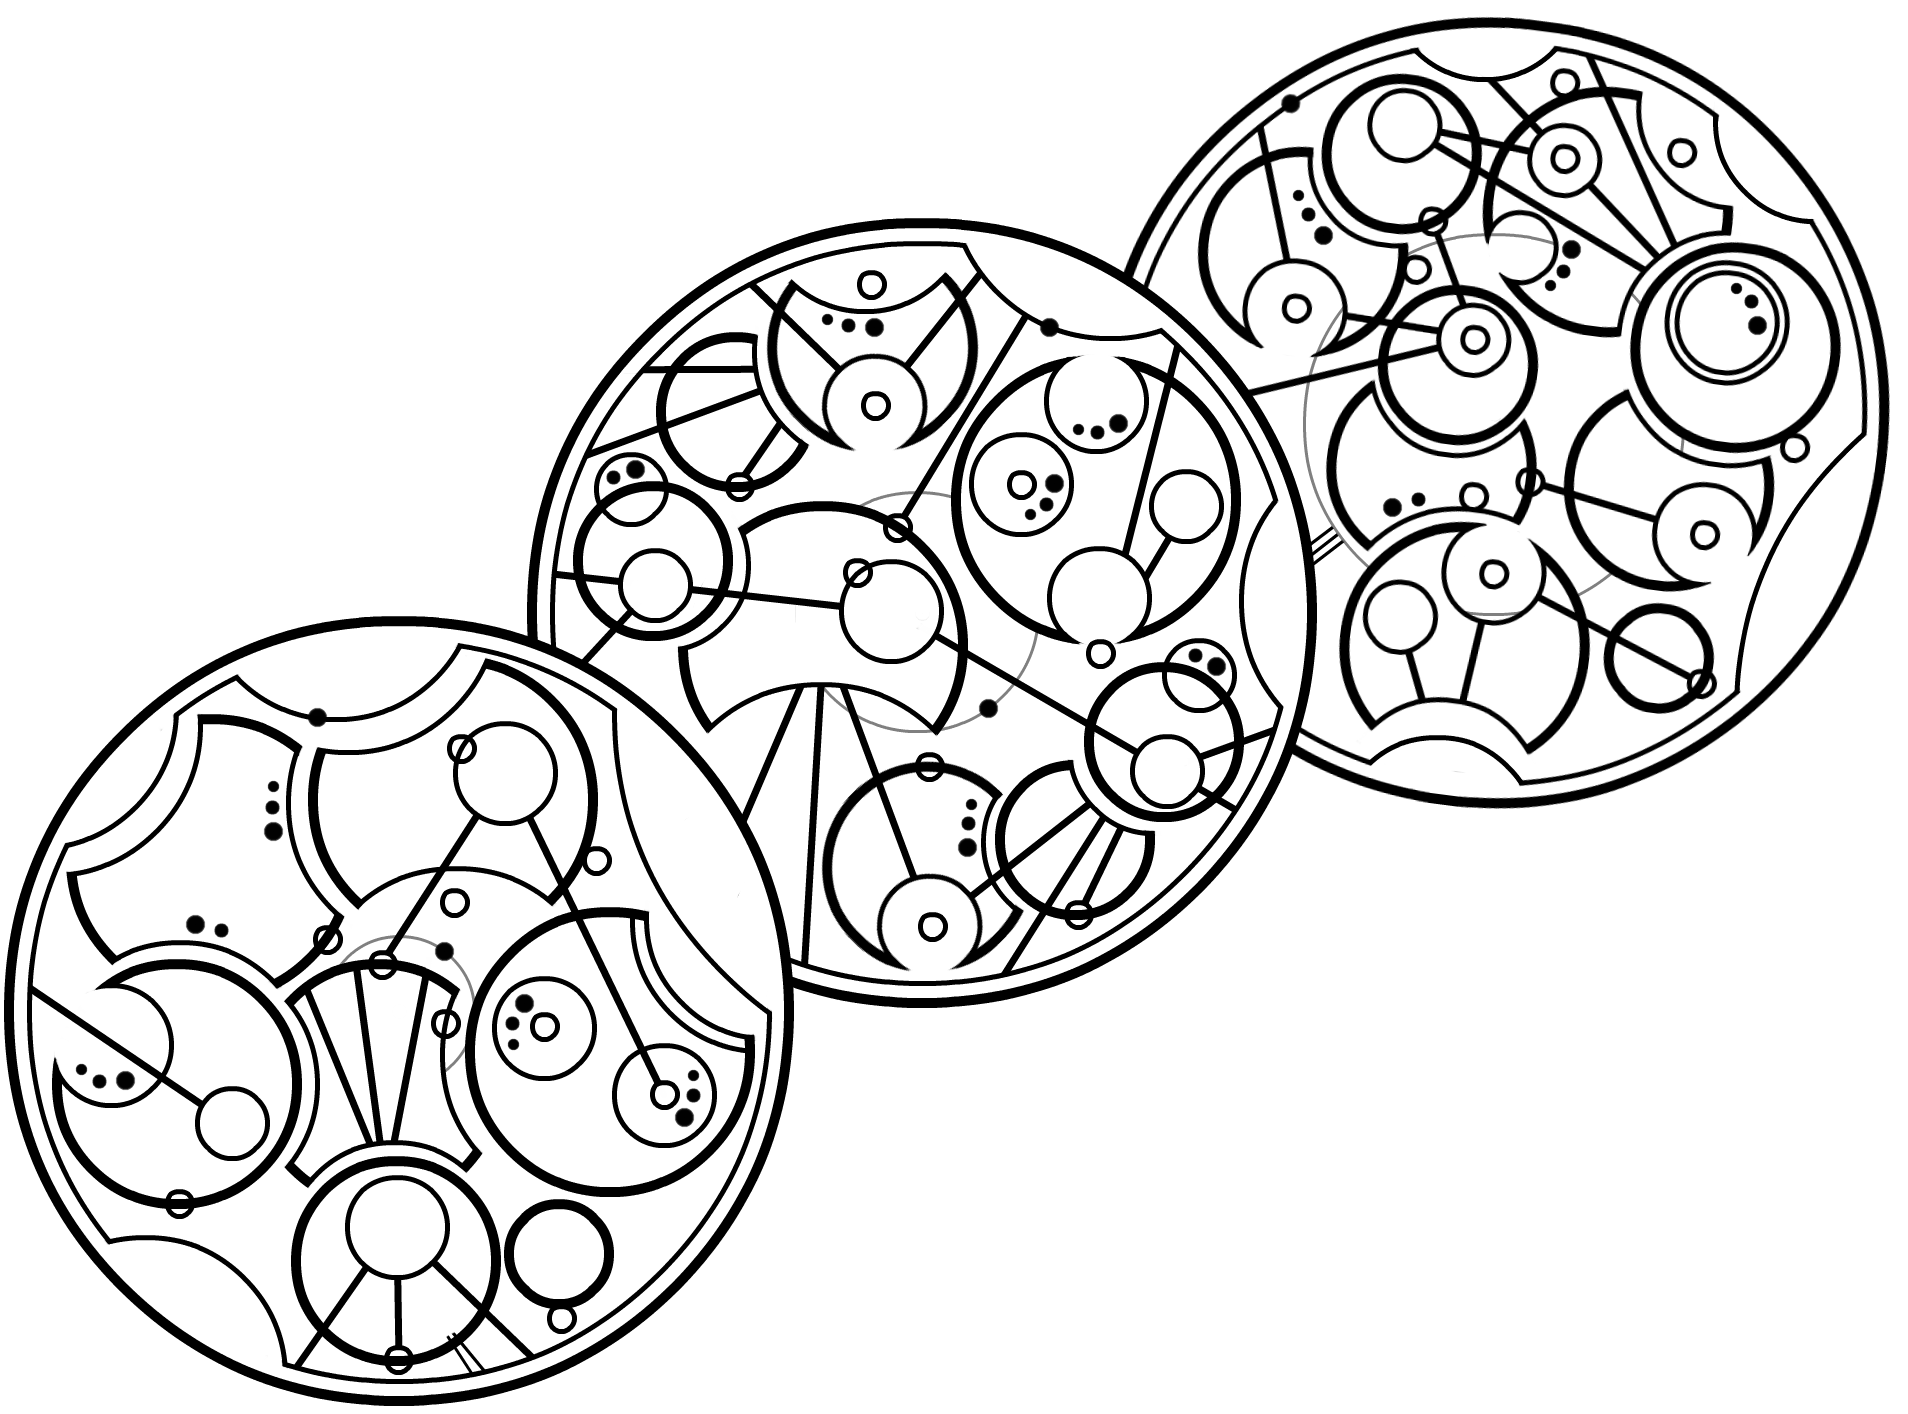 Gallifreyan 009a - WIP, Teapot, Lines 1-3 (adjust) by ThorUF72